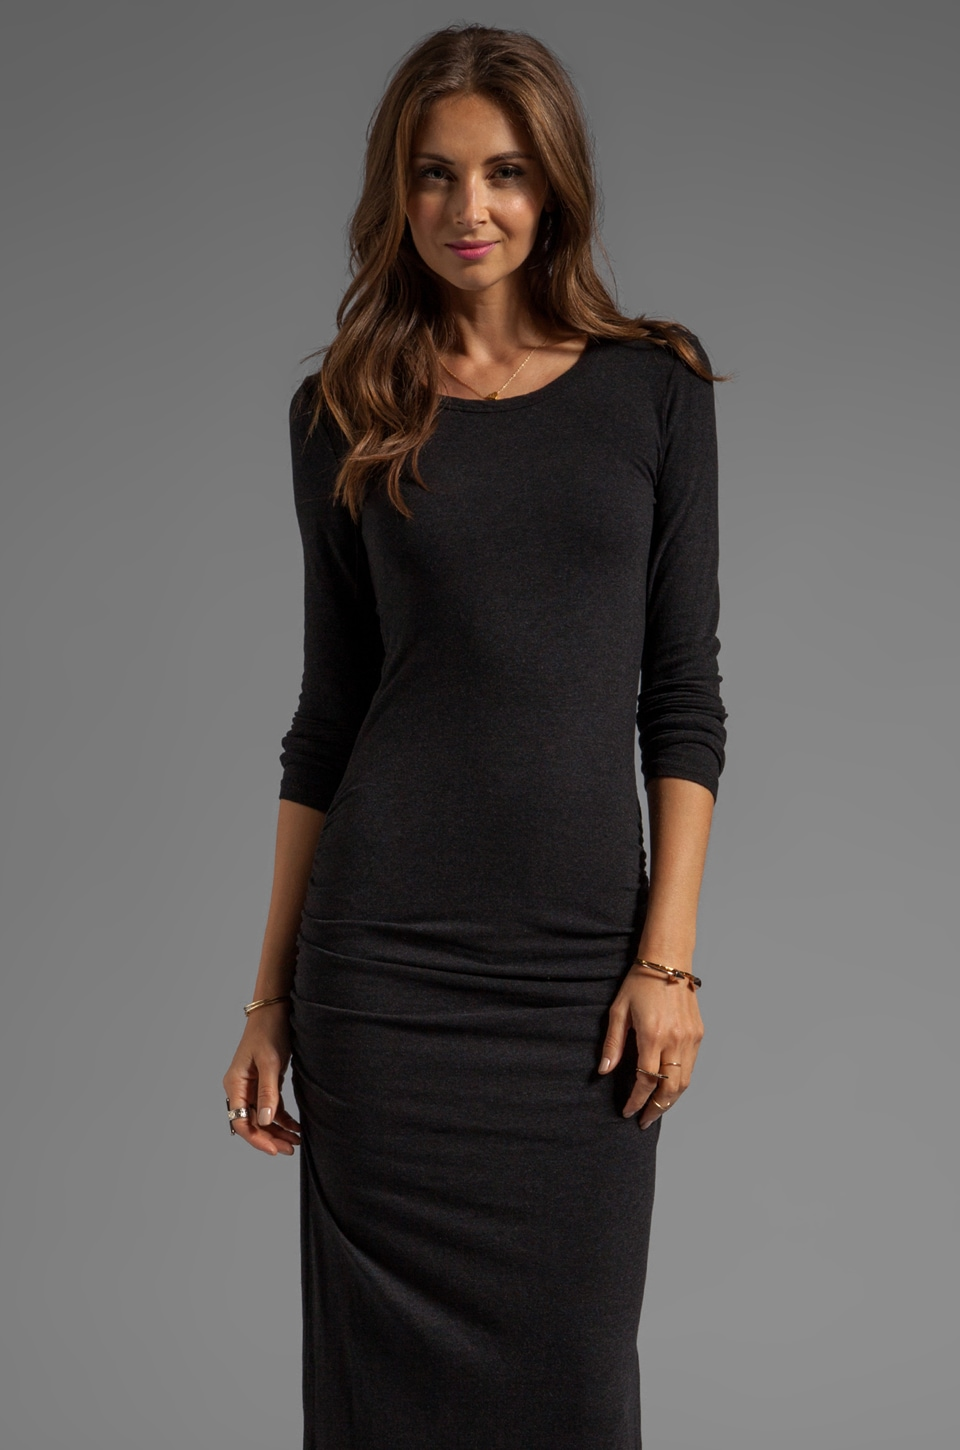 James Perse L/S Split Dress in Black Melange